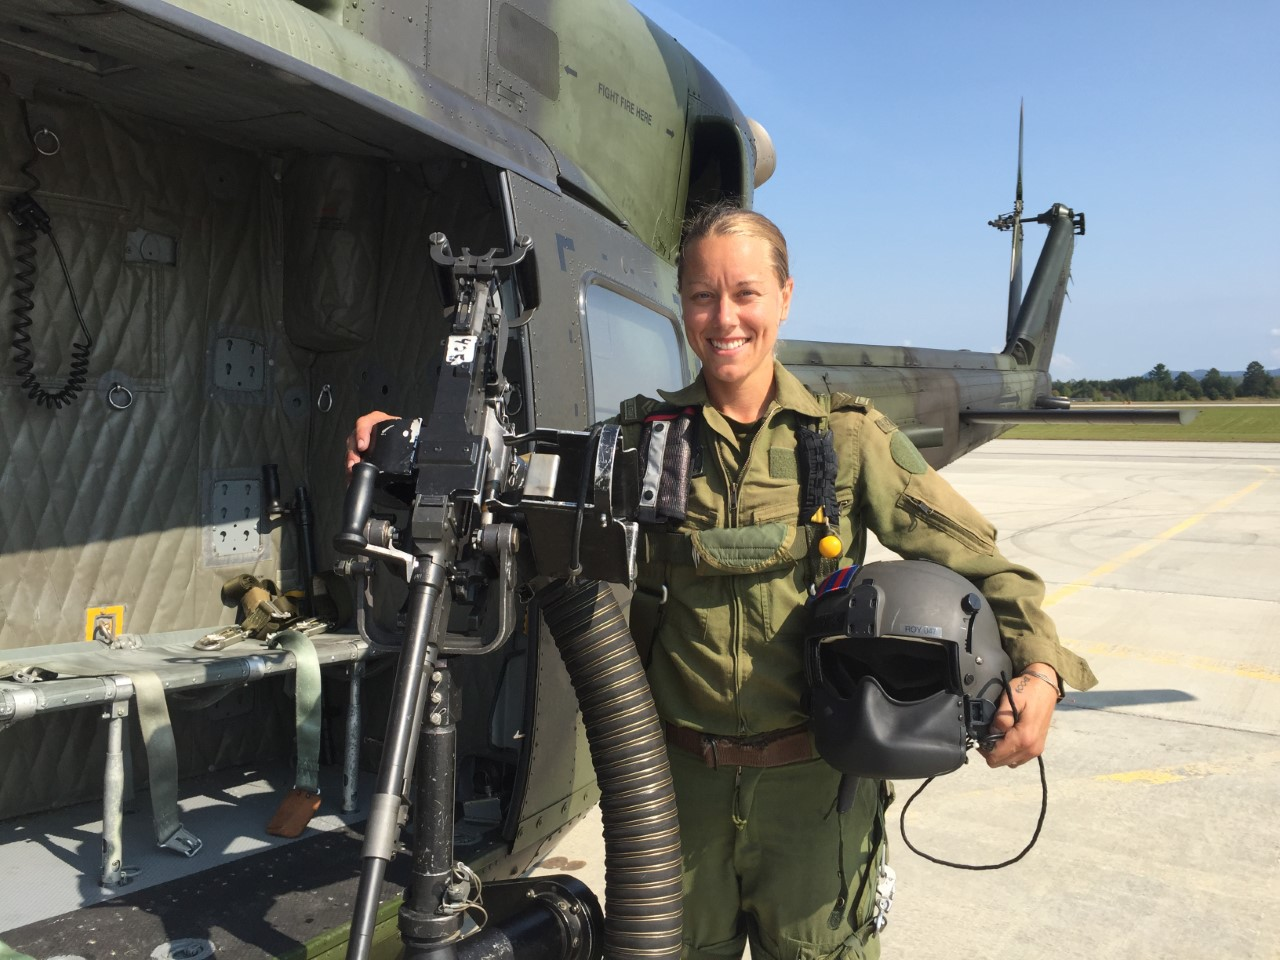 A woman wearing olive green flying clothing stands next to a green and black military helicopter. She holds a flight helmet under her right arm and her left hand rests on a large machine gun mounted on a stand.